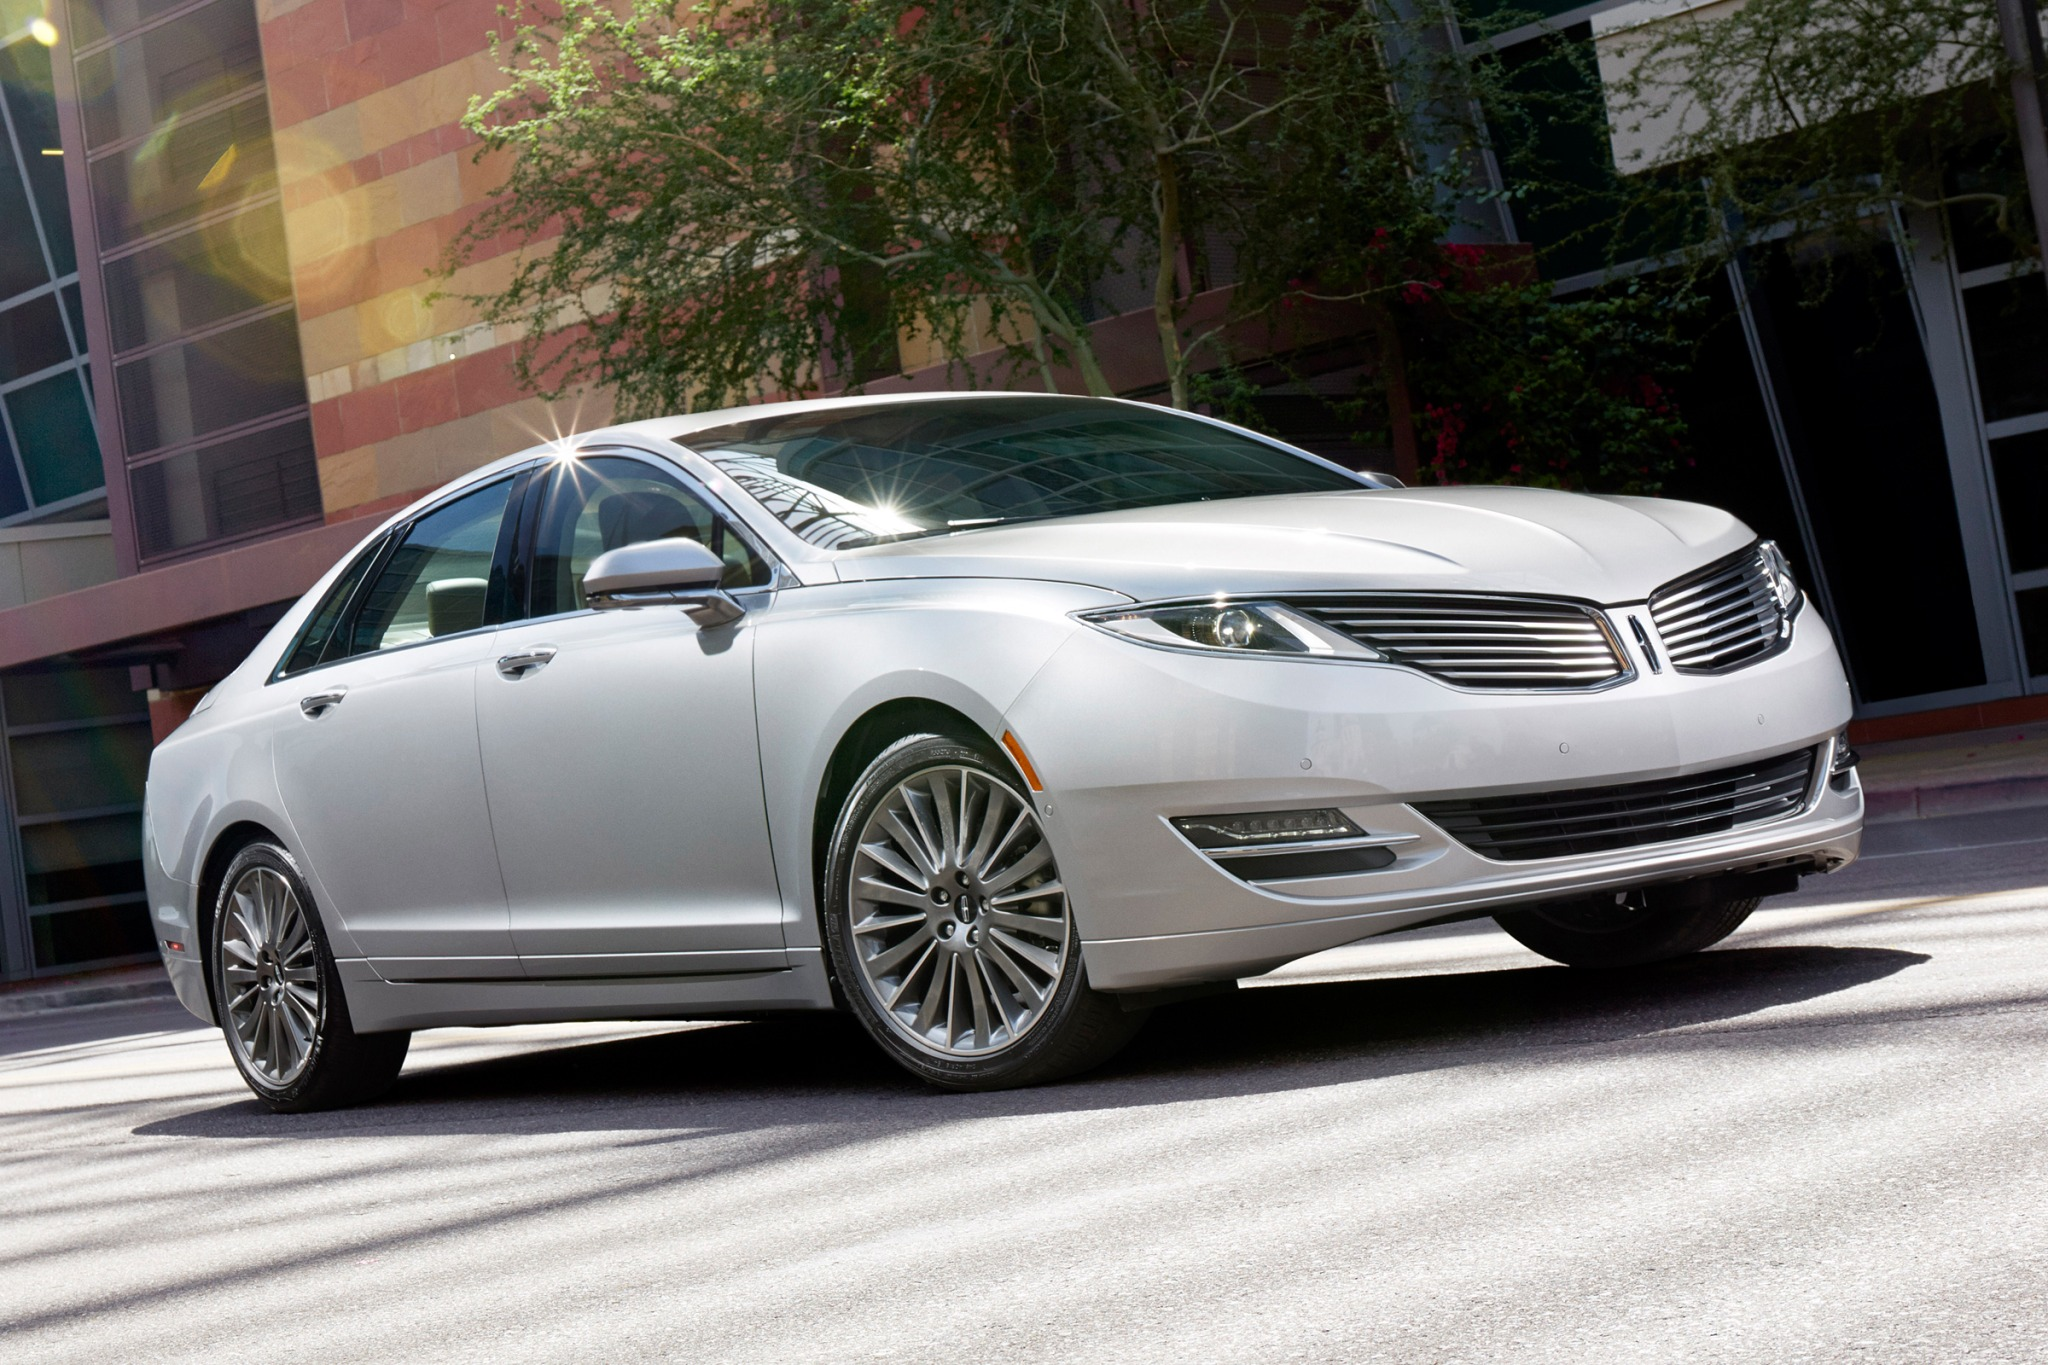 sale for lincoln the mkz jalopnik review